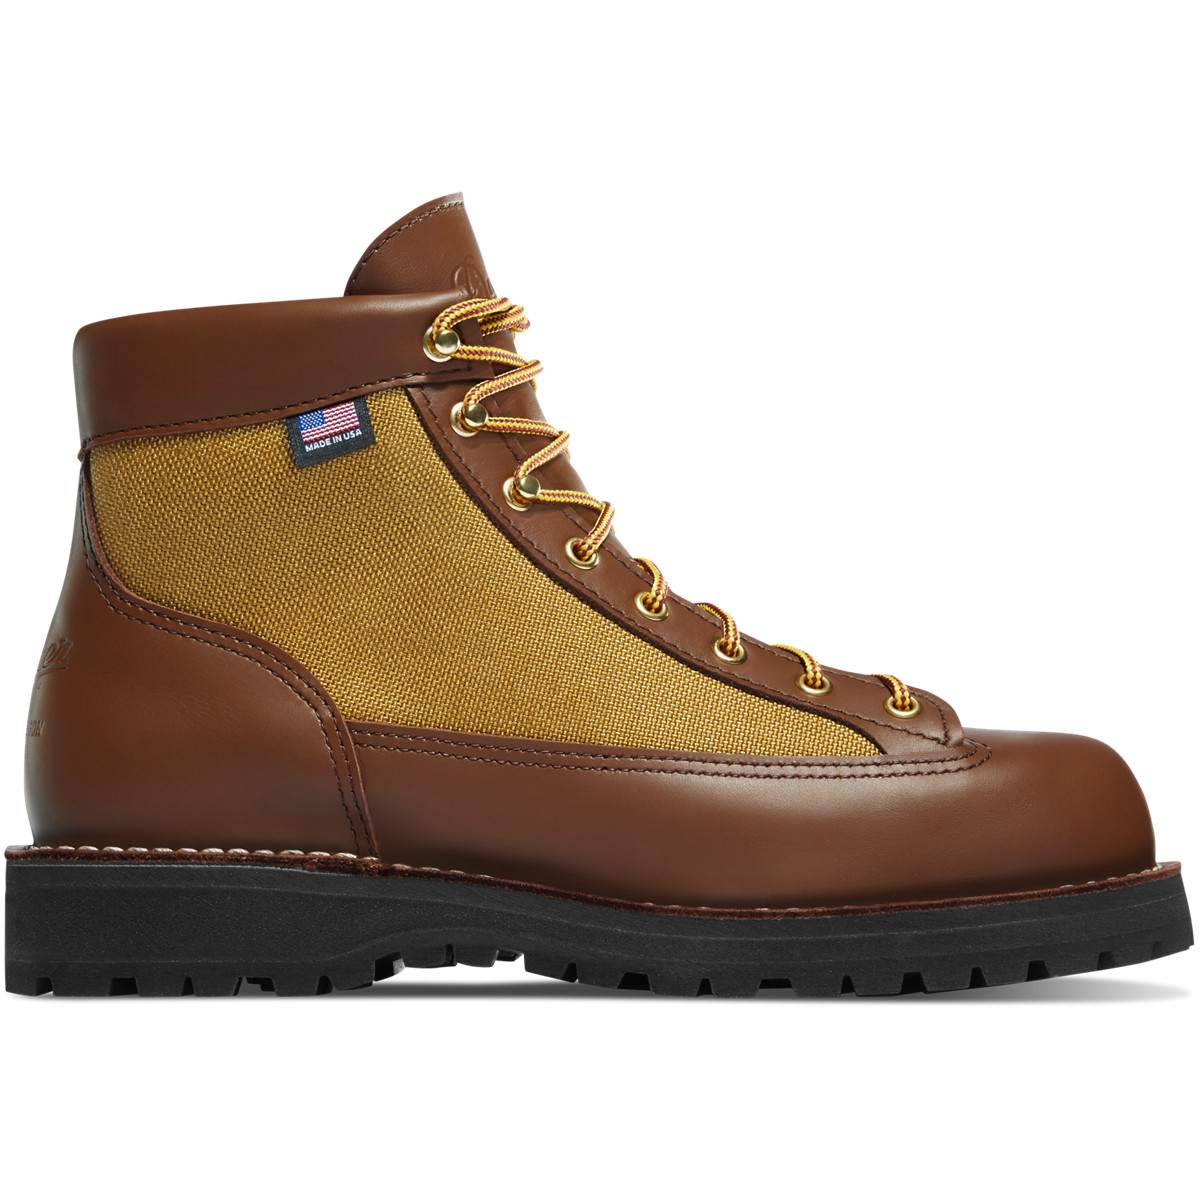 Danner Boots: AW13 Collection